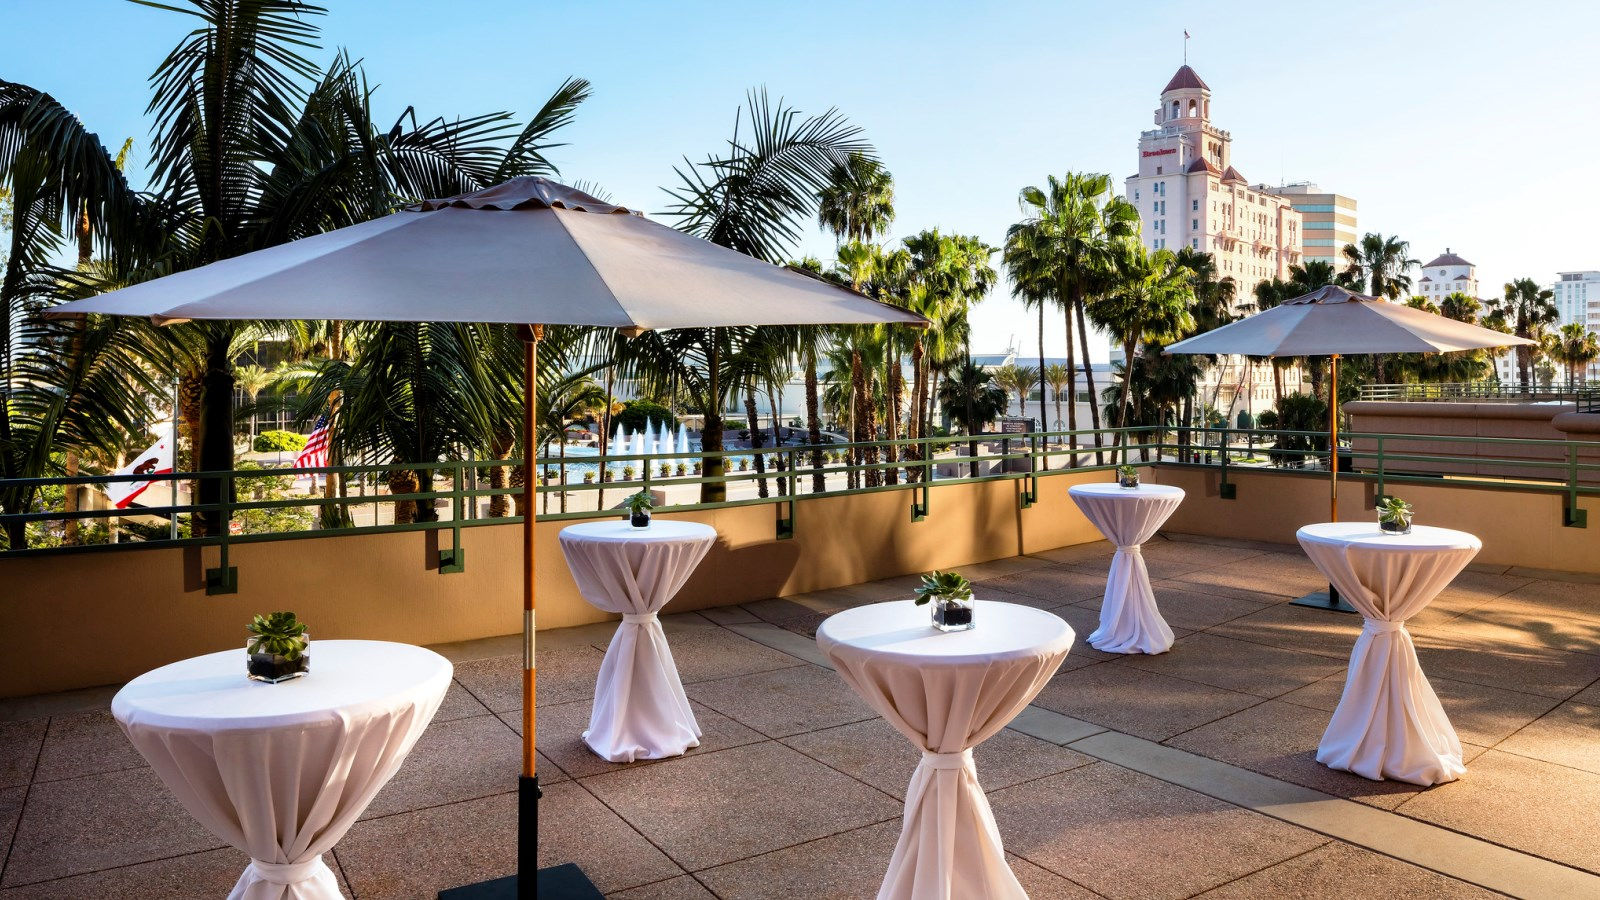 Long Beach Wedding Venues - Outdoor Terrace